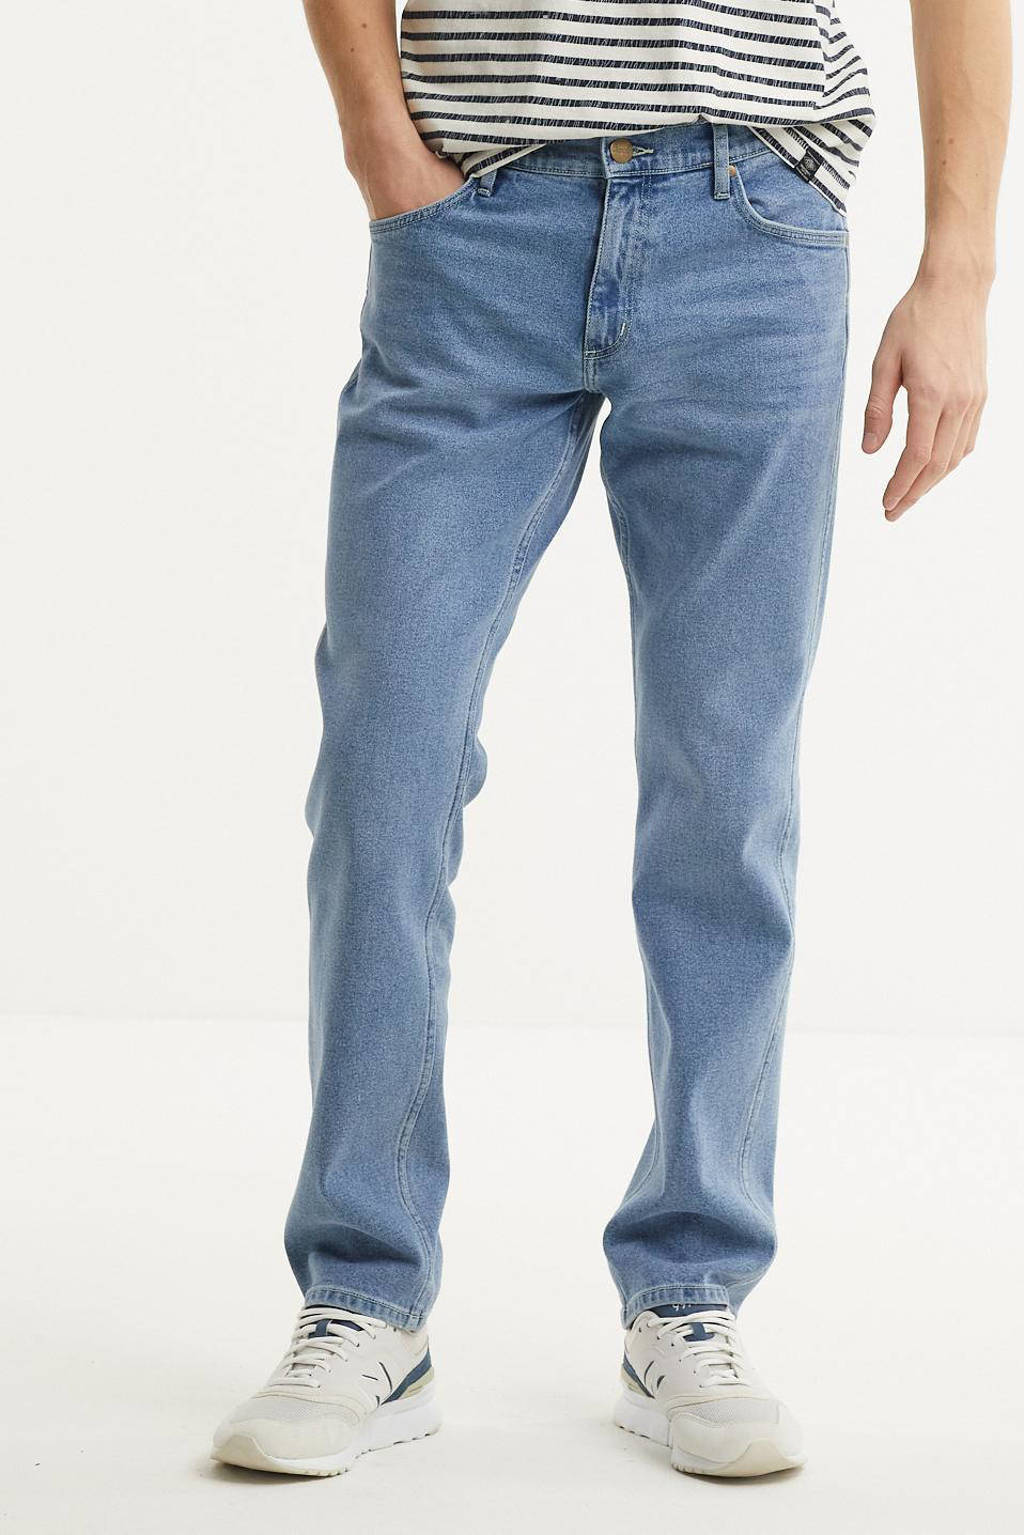 Wrangler straight fit jeans Greensboro moonstone, Moonstone